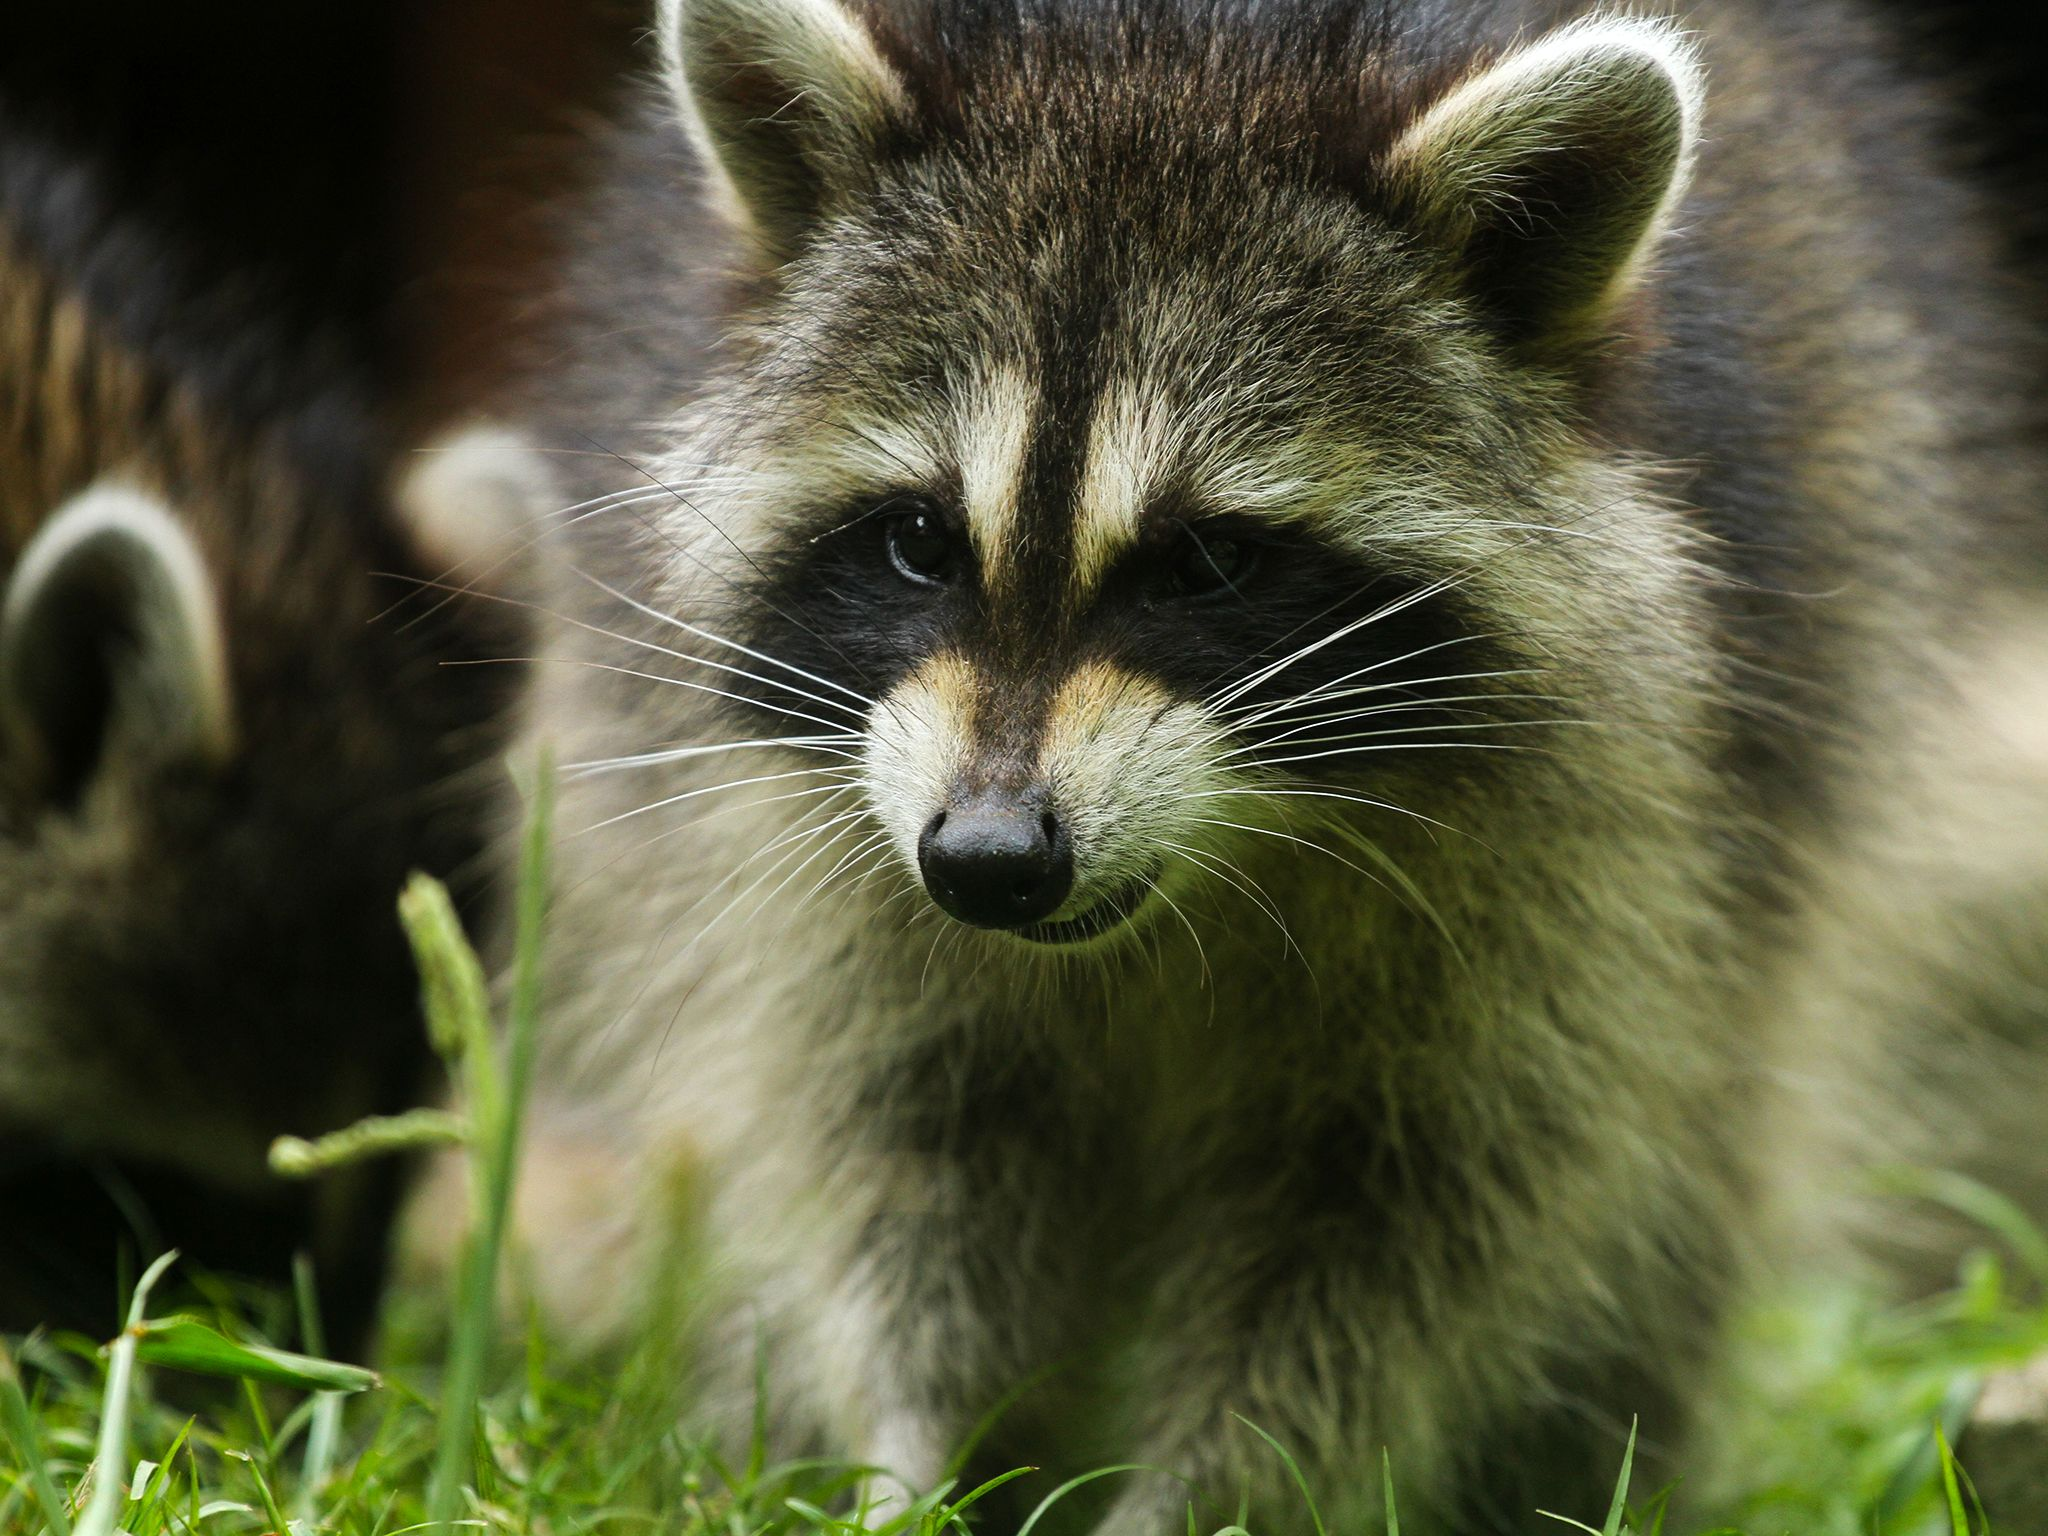 Washington, D.C.: A raccoon in the grass. This image is from Raccoon: Backyard Bandit. [Photo of the day - 一月 2015]